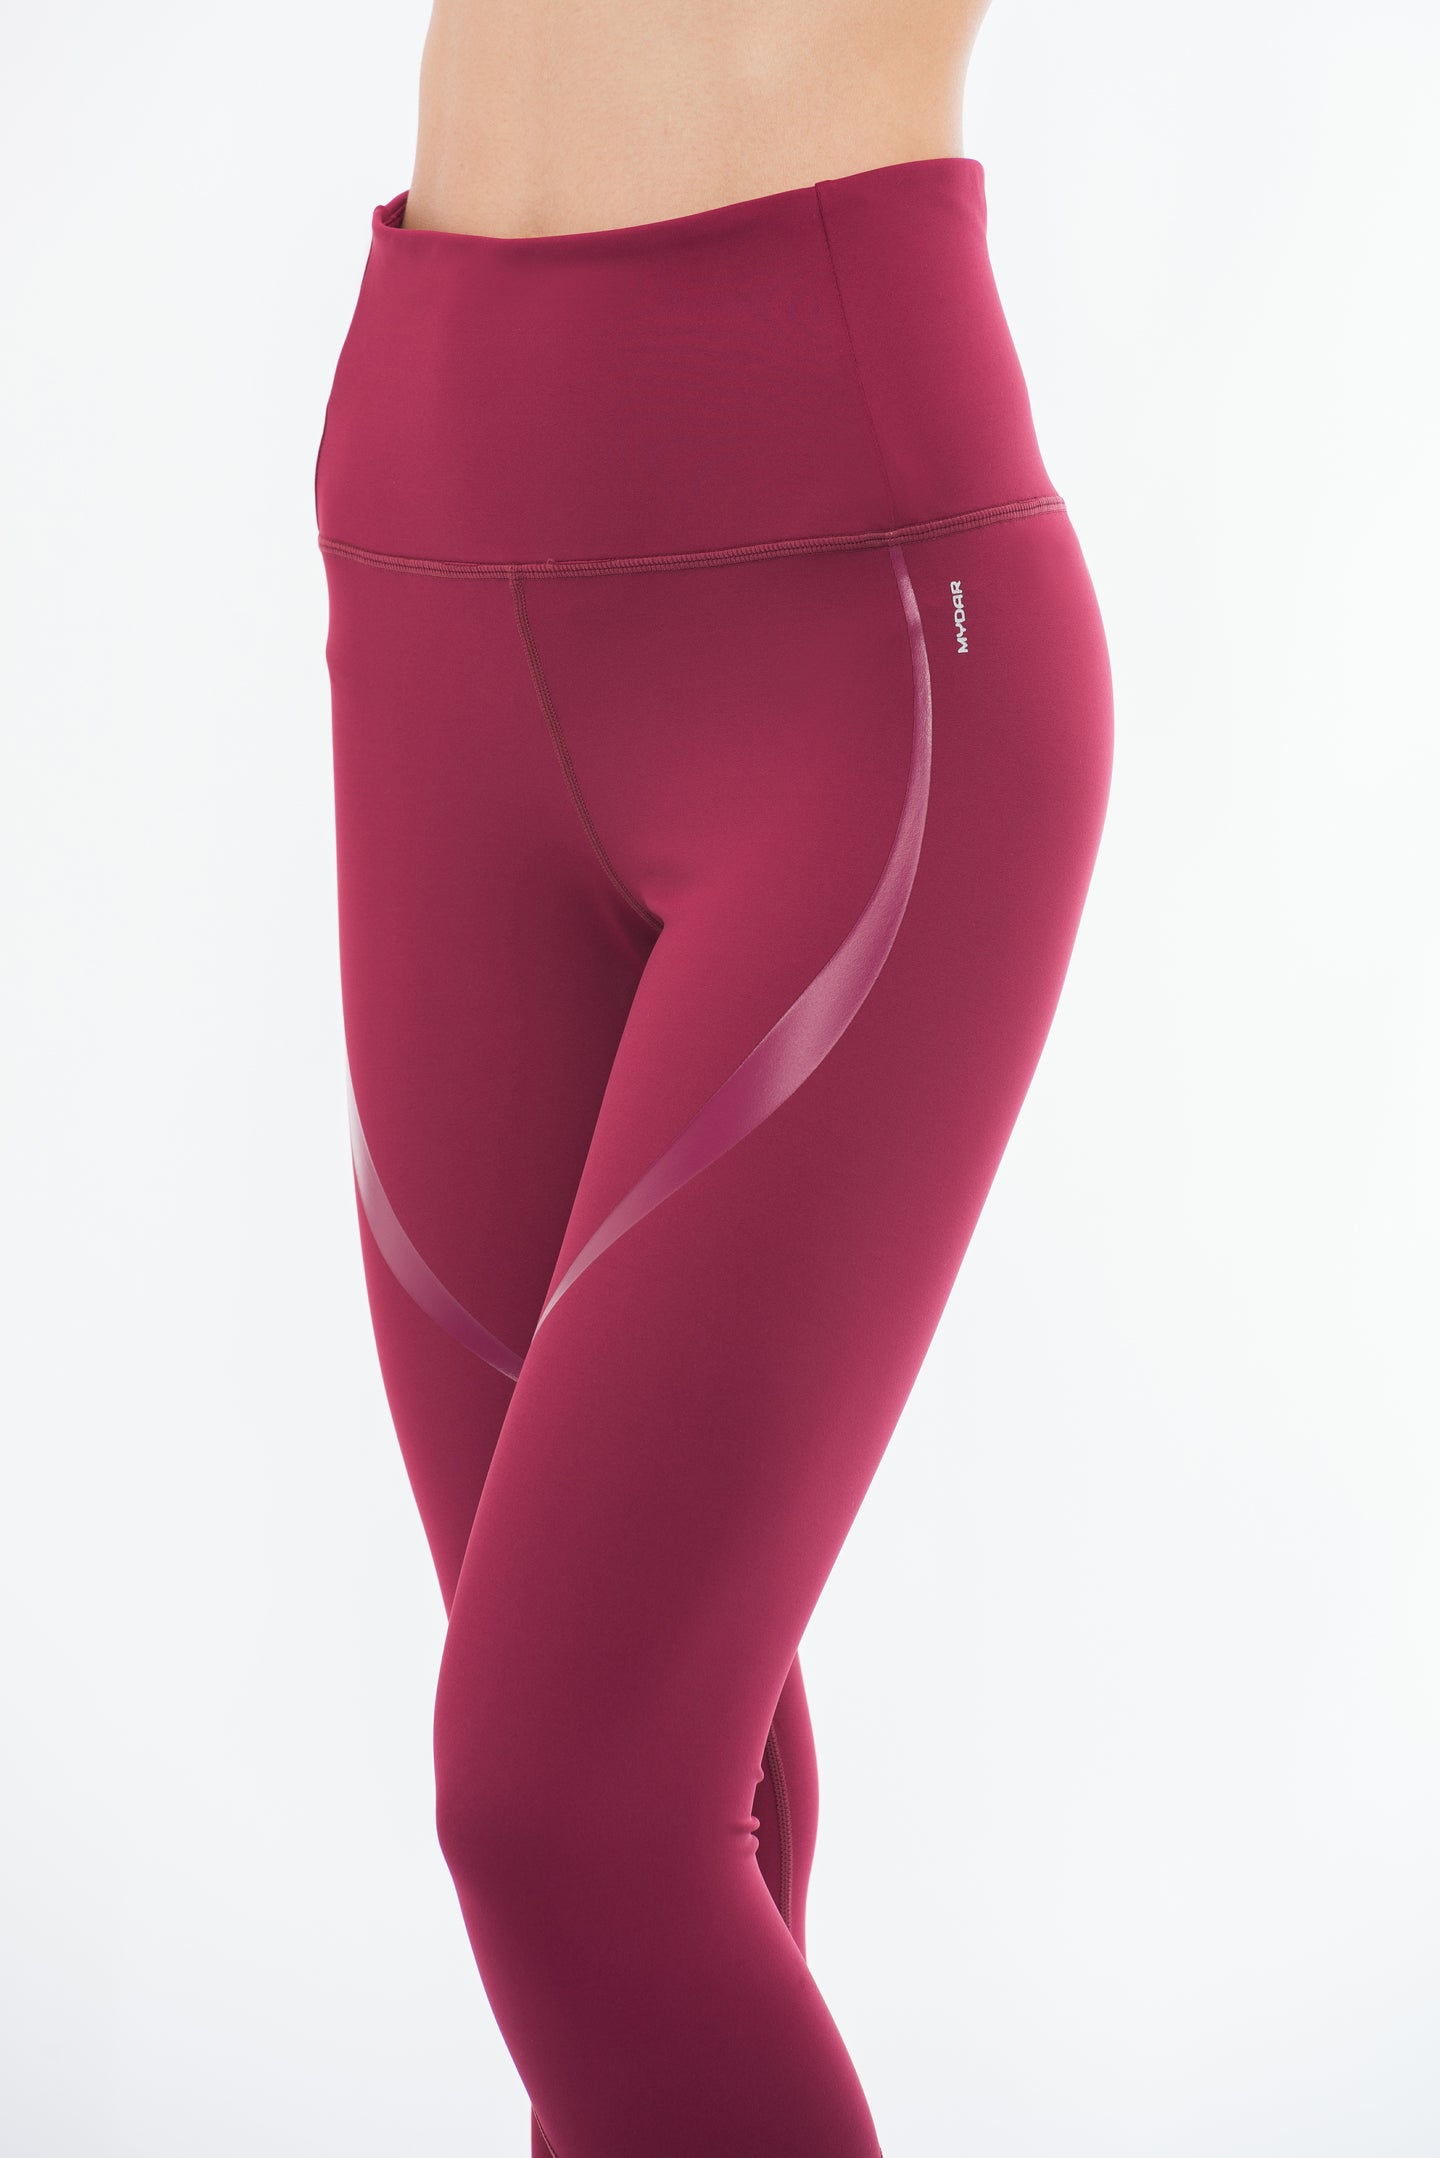 THE CURVY BOSS Leggings (Burgundy)